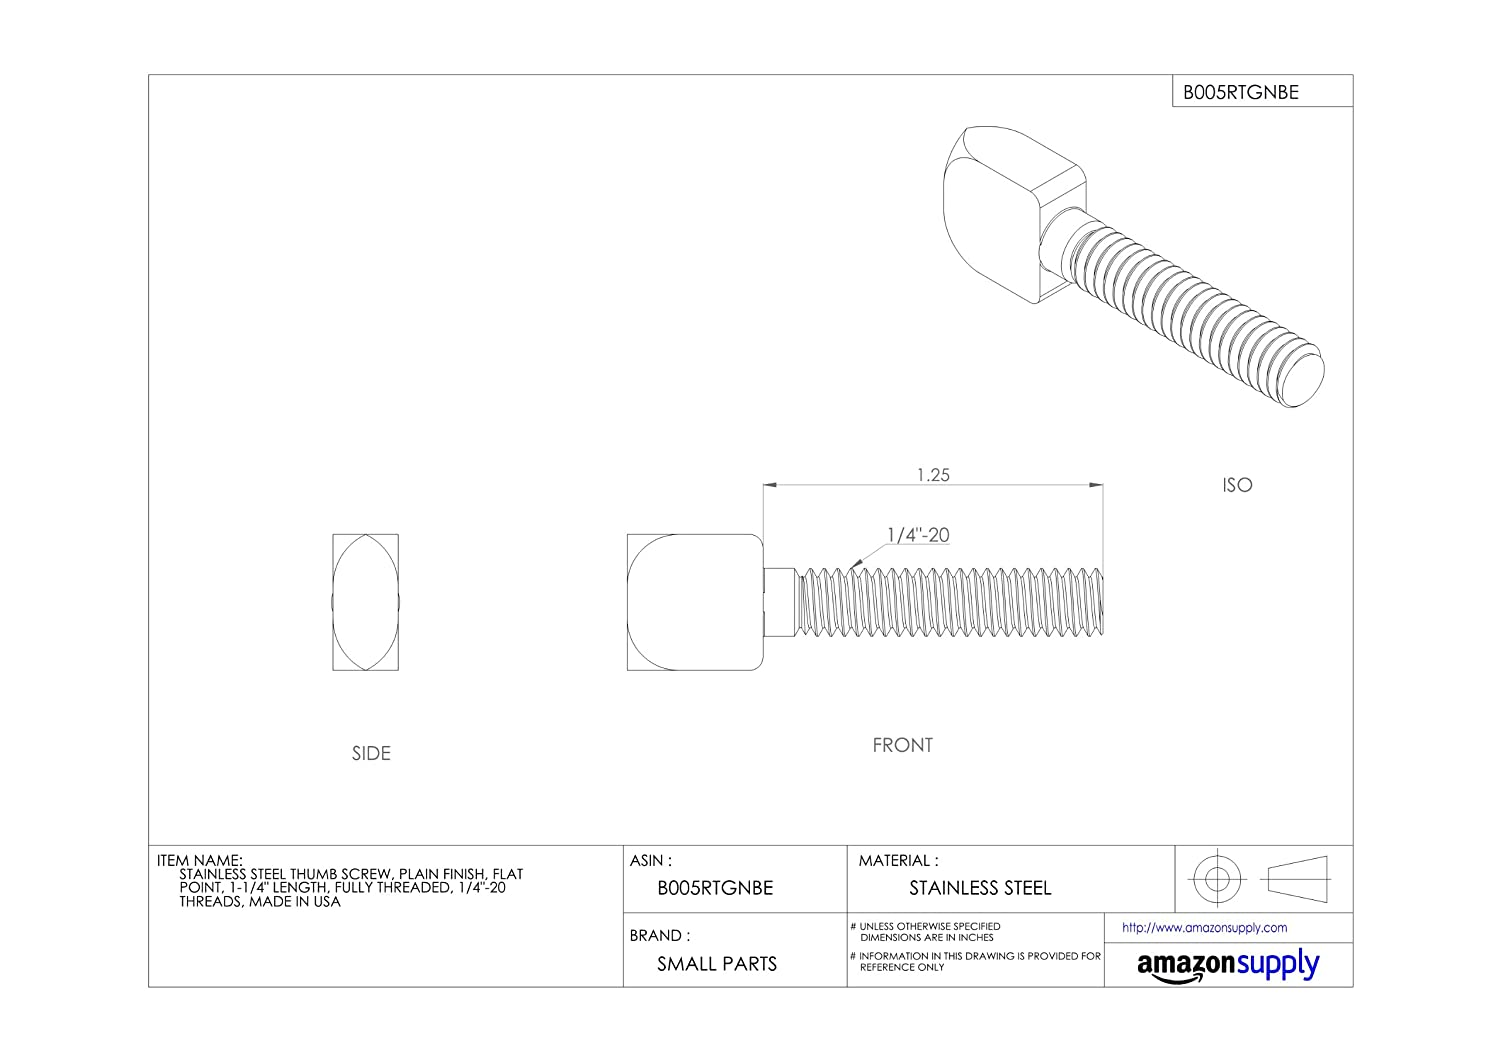 Plain Finish 1//2-13 UNC Threads 1-3//4 Length Flat Point Fully Threaded Made in US Stainless Steel Thumb Screw